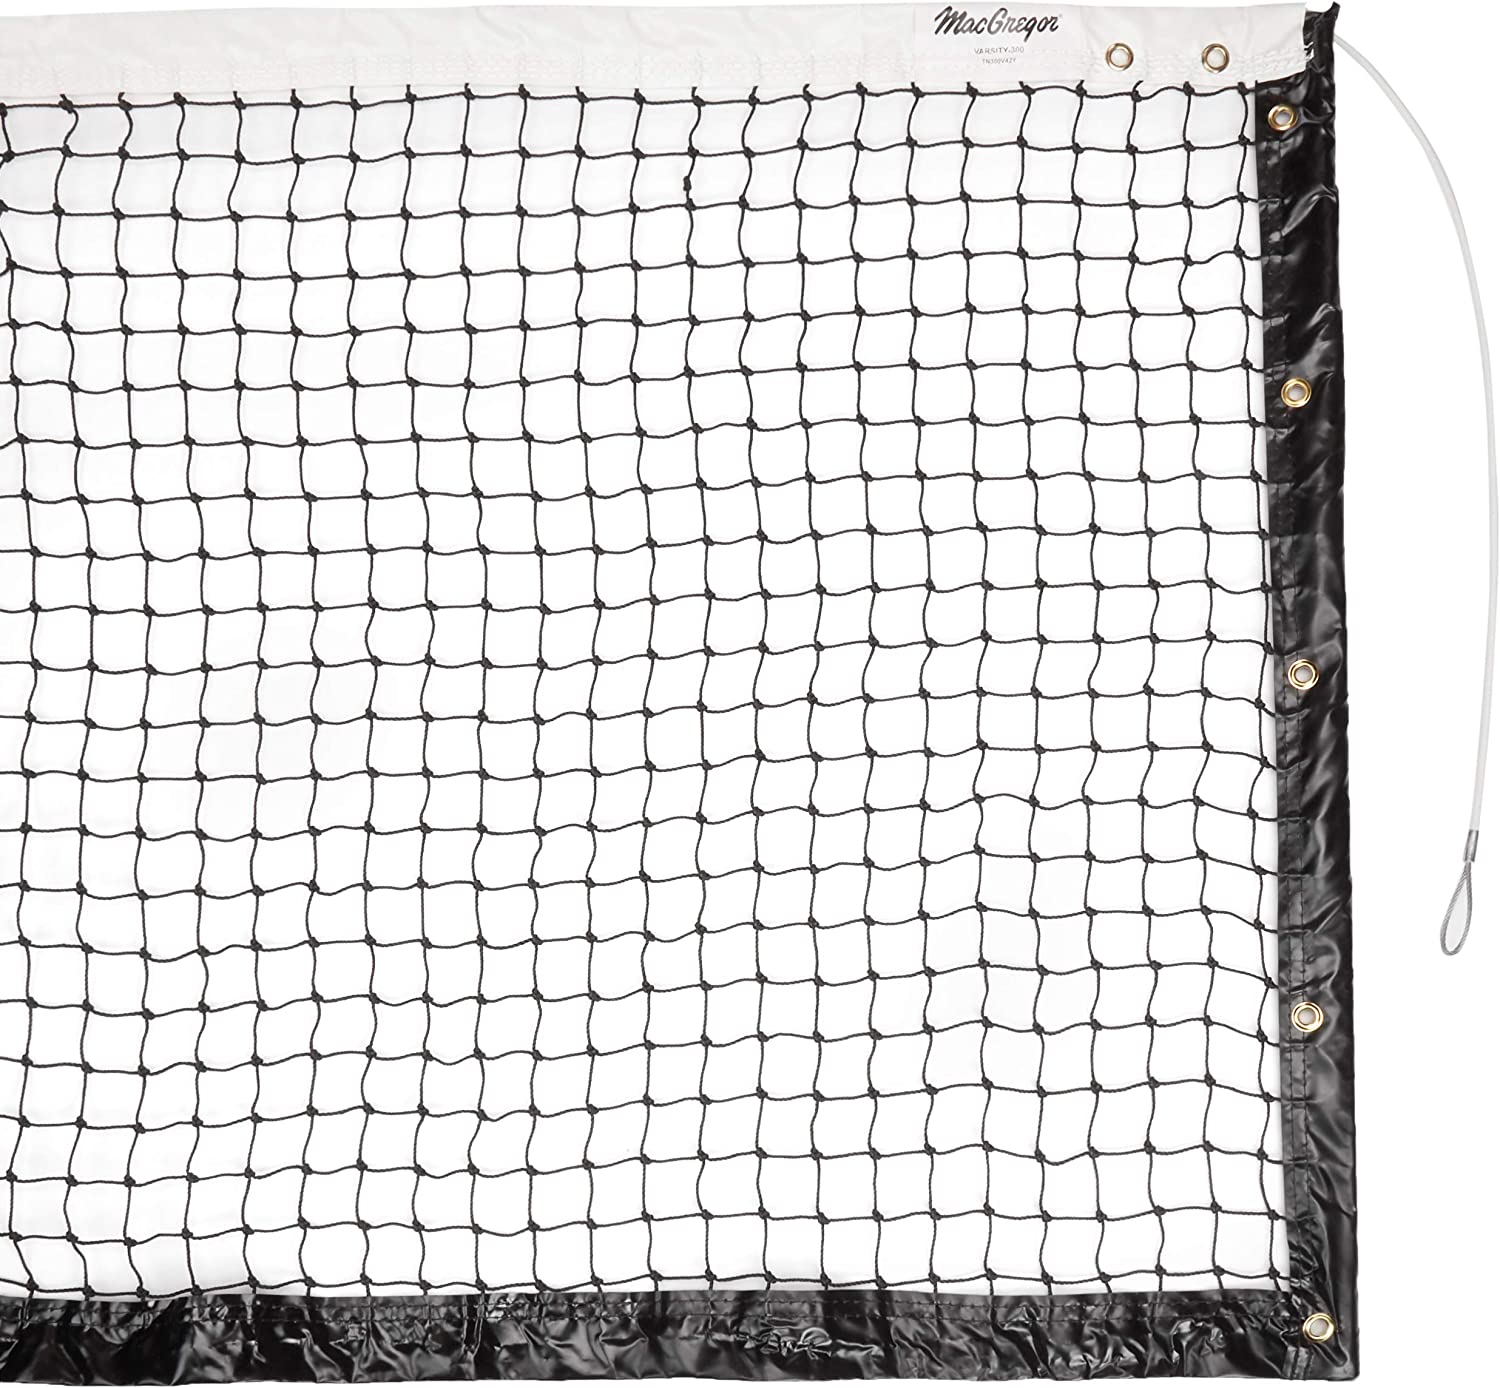 MacGregor Varsity 300 Tennis Net, 42-feet : Sports & Outdoors